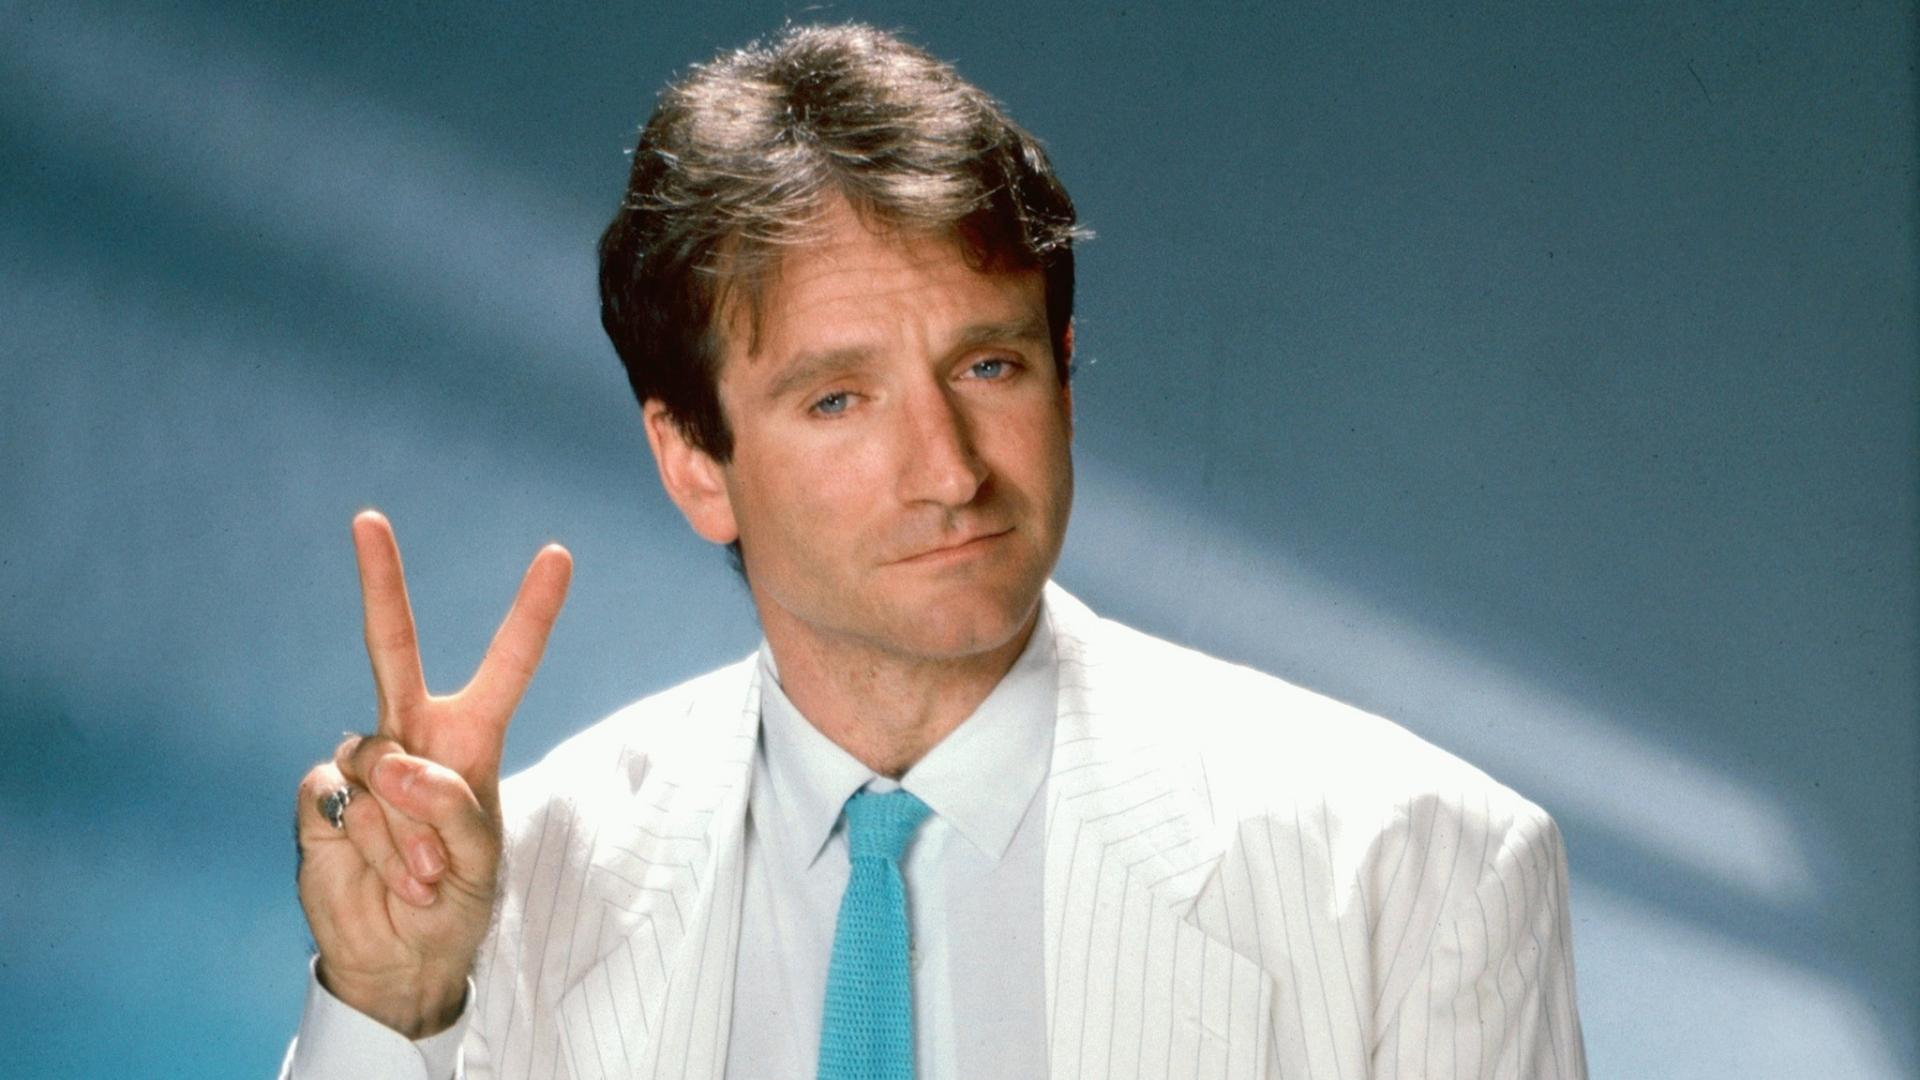 https://www.thesun.co.uk/tvandshowbiz/4220631/robin-williams-how-did-he-die/